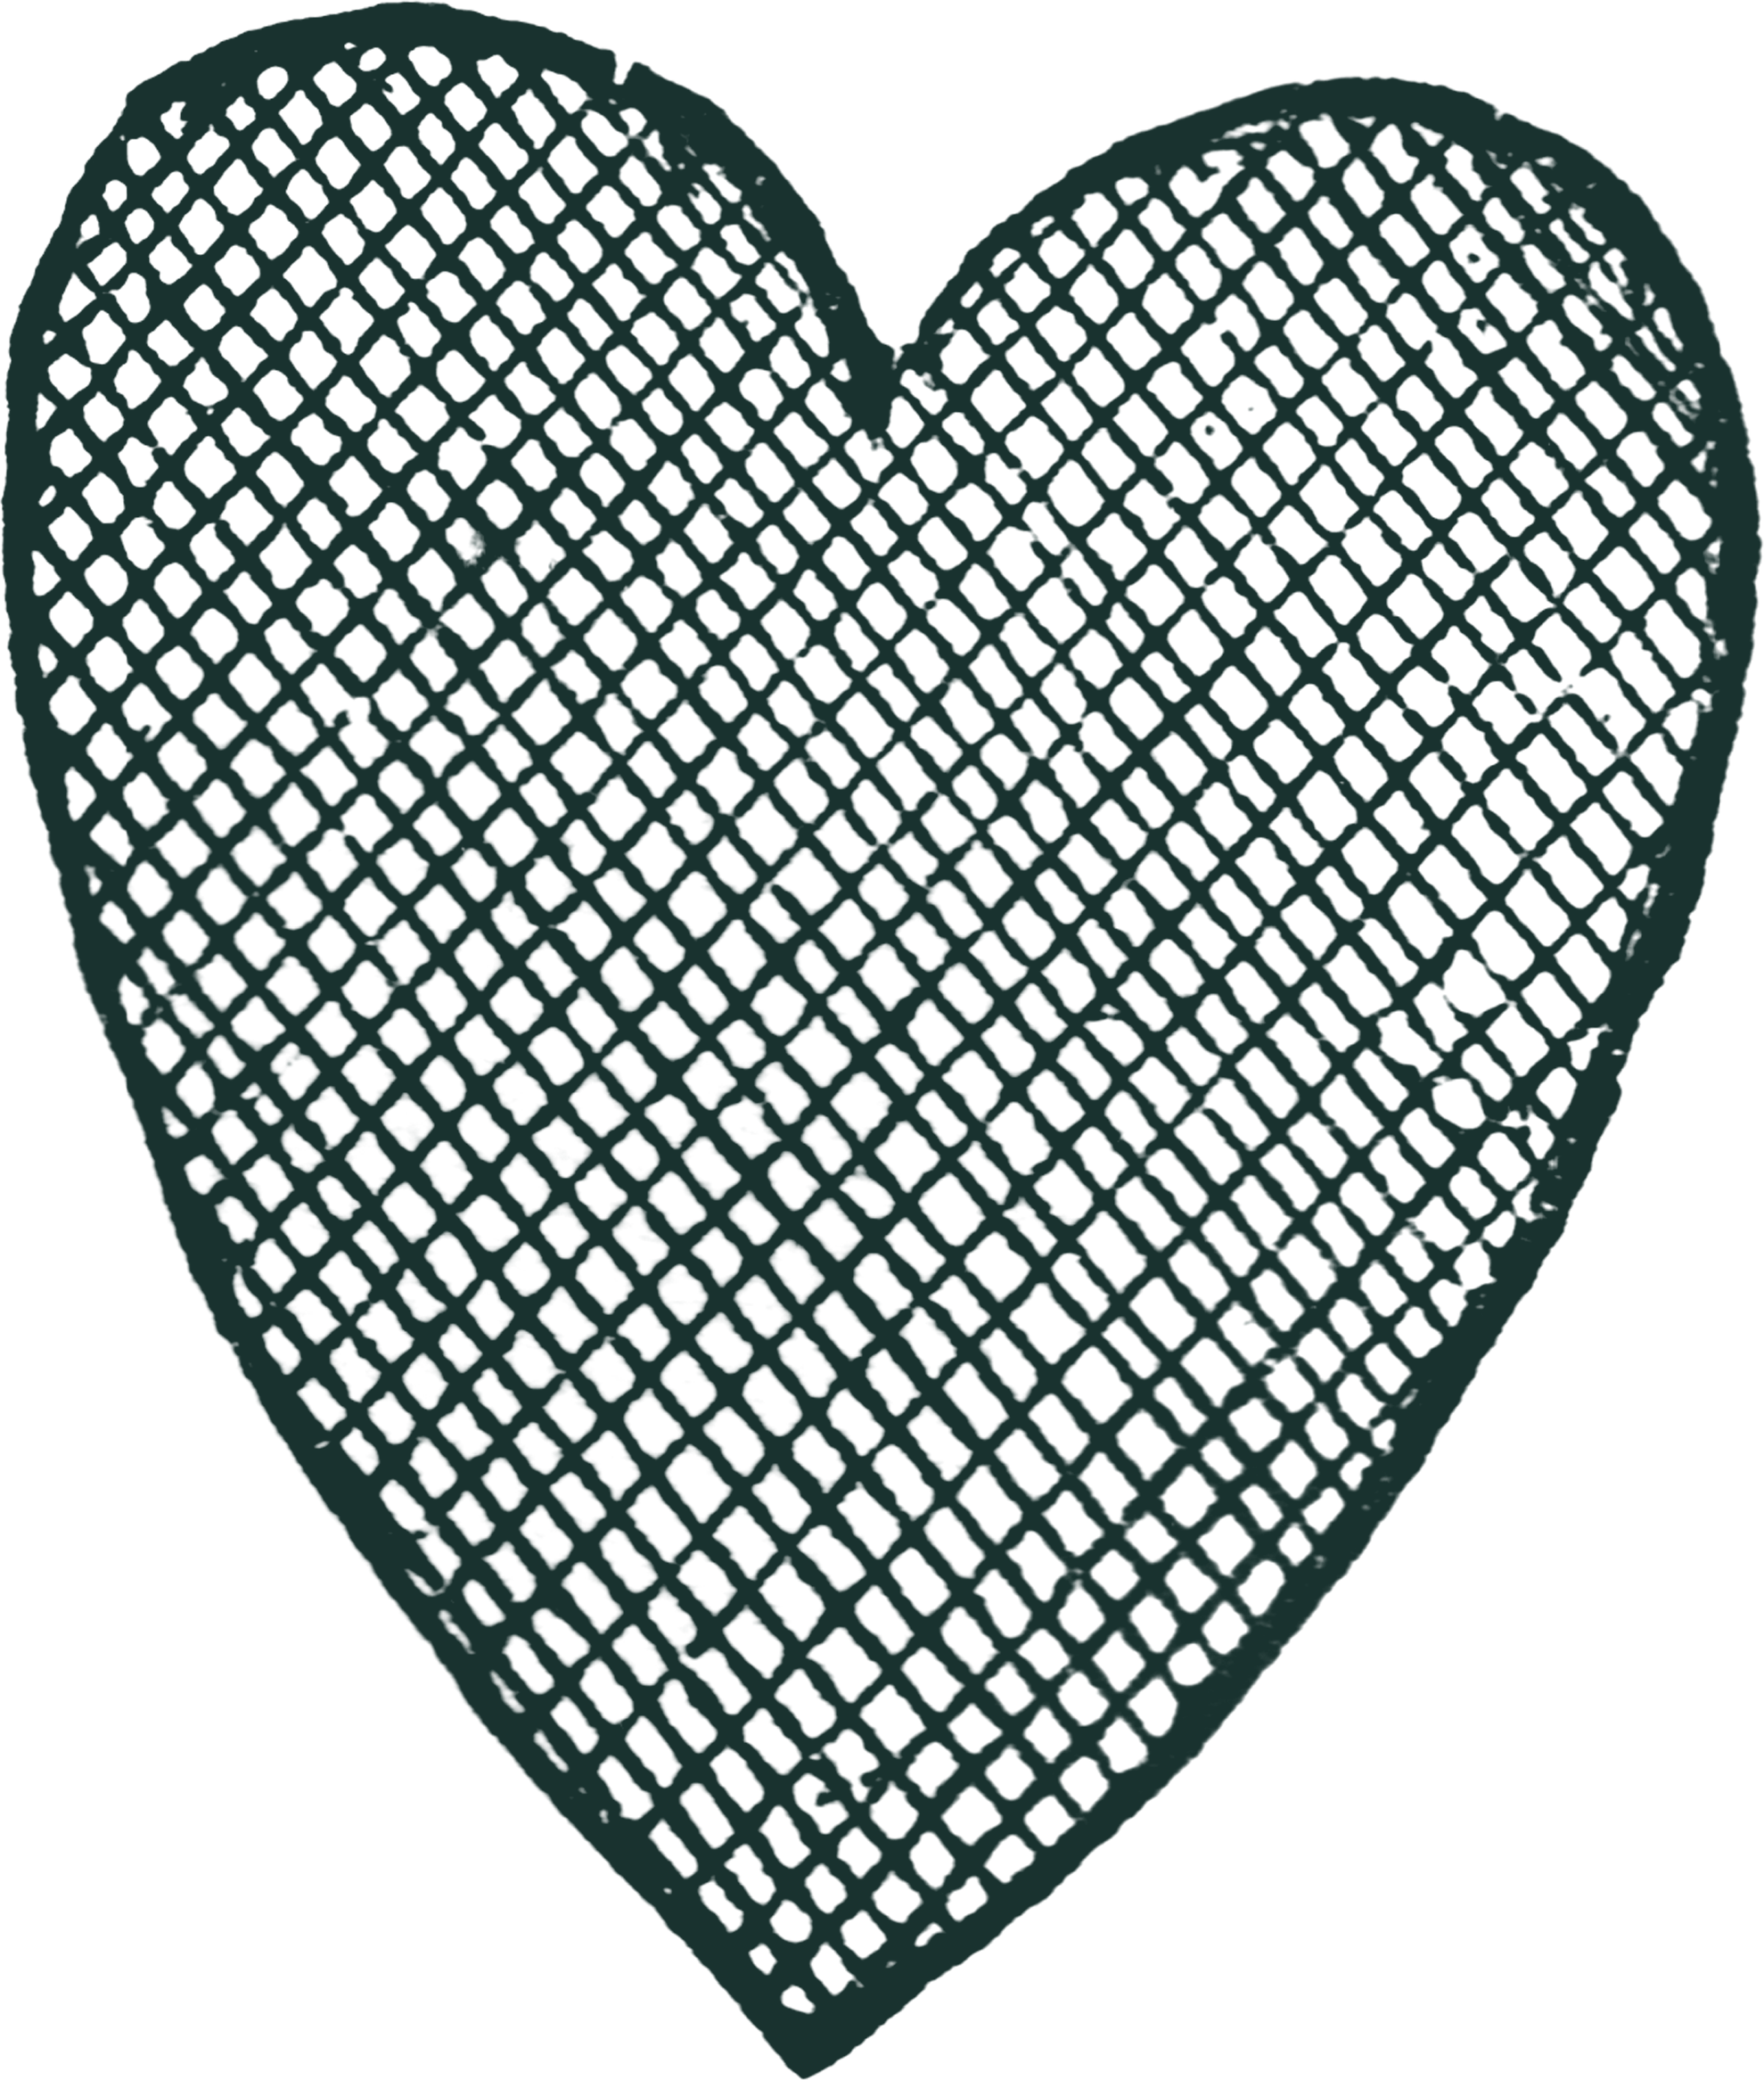 heart-r2.png